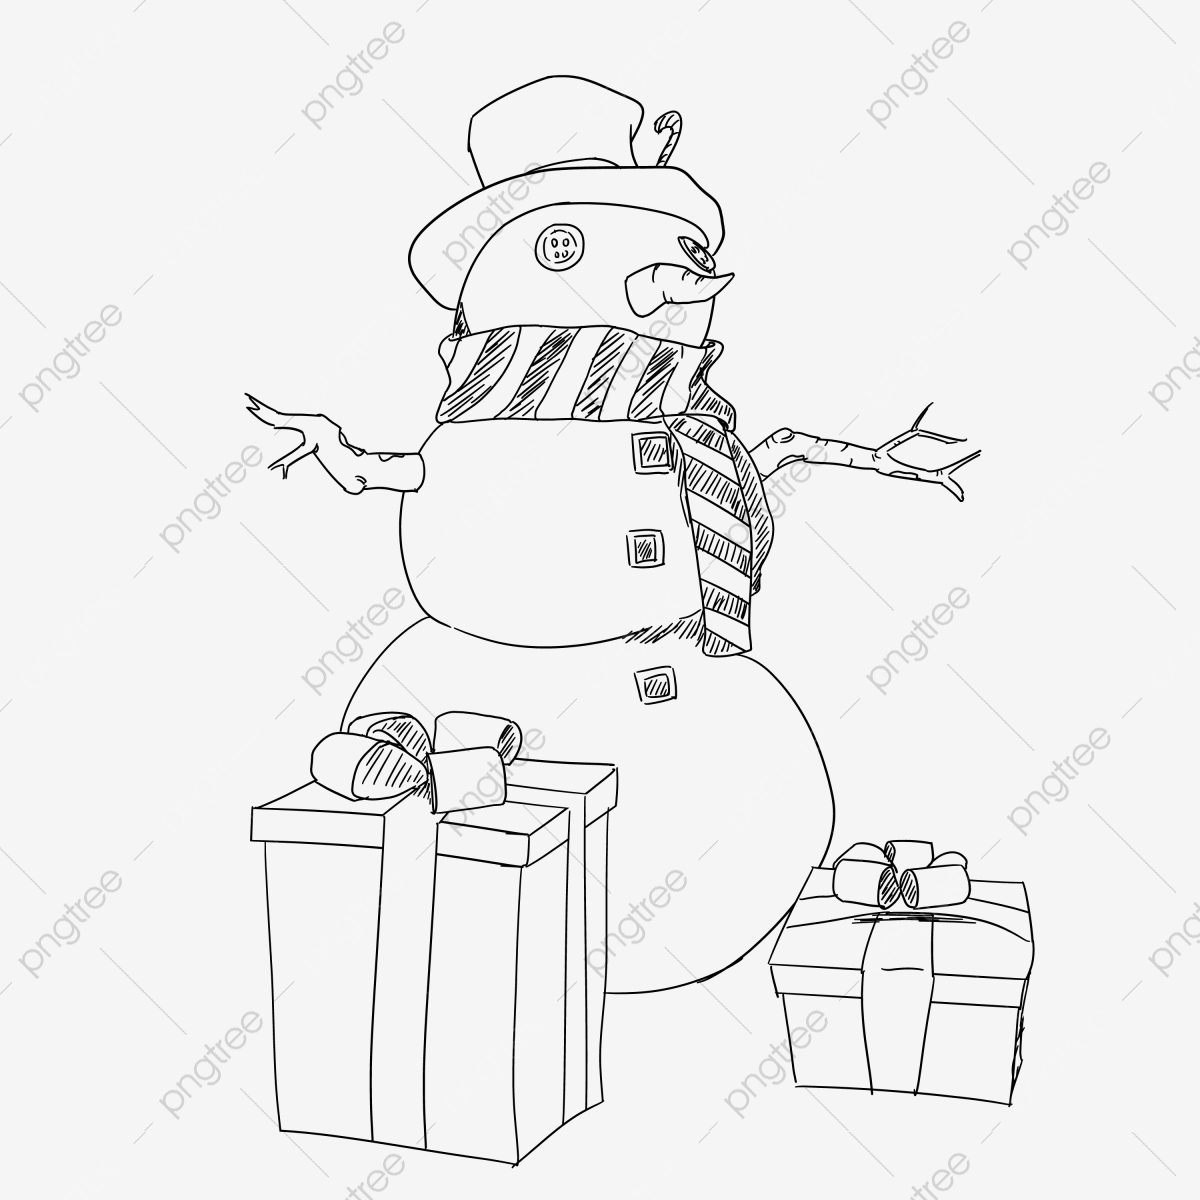 christmas drawing pattern christmas merry christmas christmas gift png transparent clipart image and psd file for free download https pngtree com freepng christmas drawing pattern 3474795 html